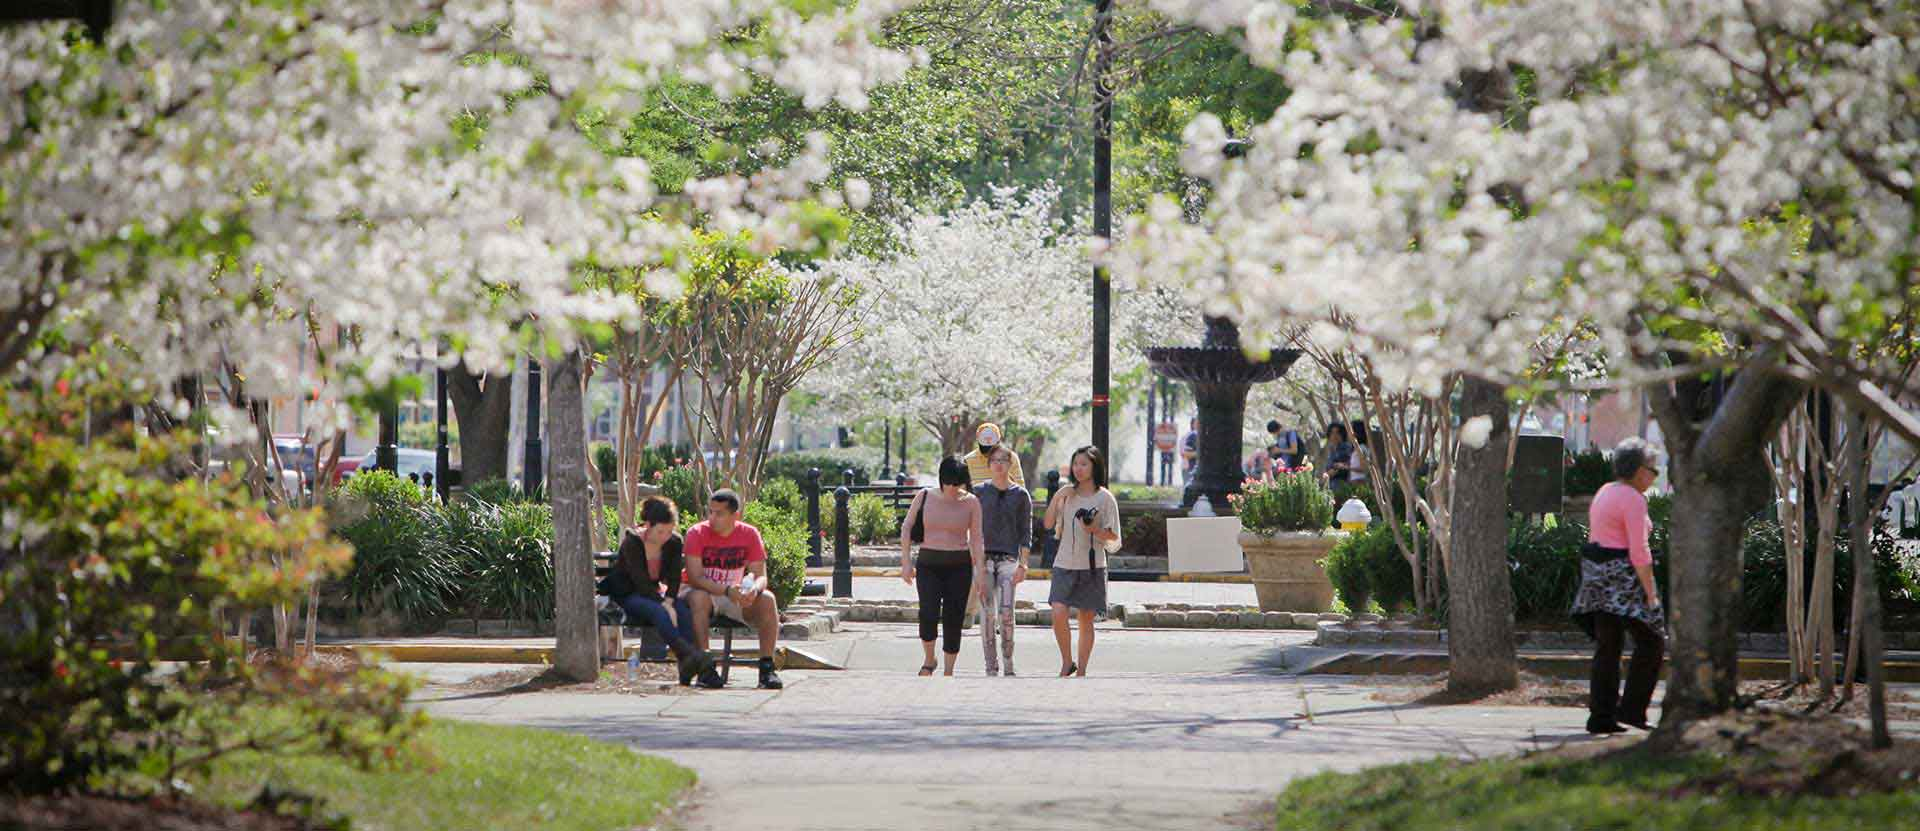 Downtown macon with the Cherry Trees blooming pink flowers and crowds walk by.